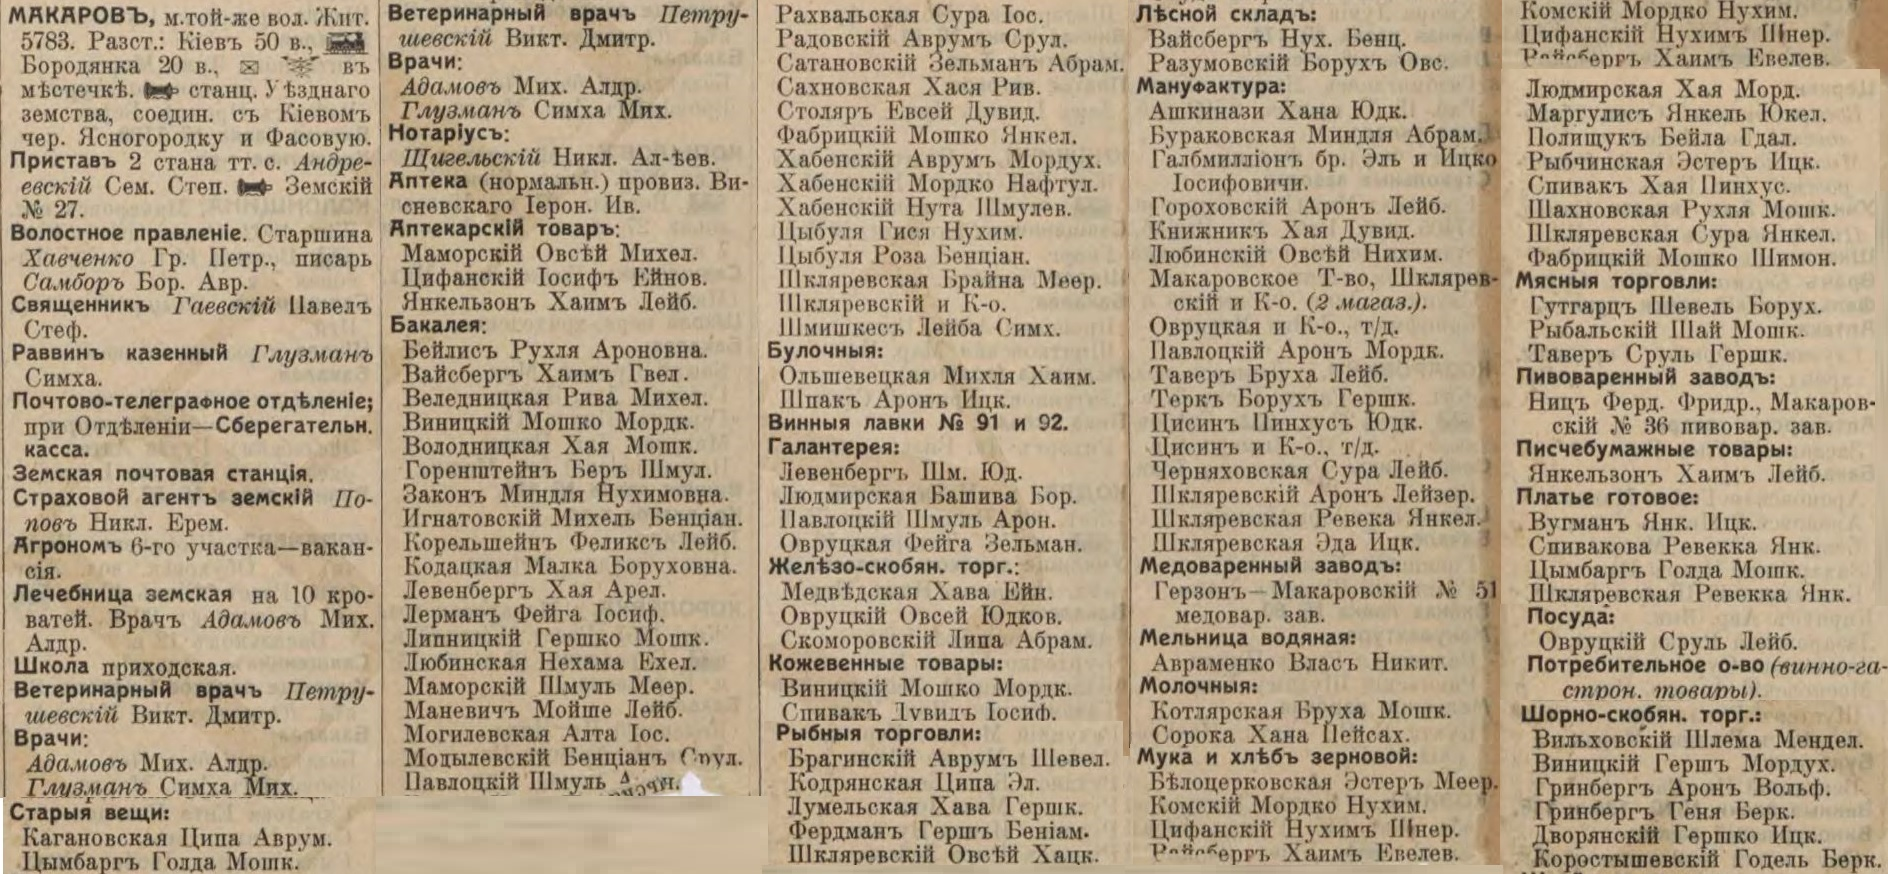 Makarov entrepreneurs list from Russian Empire Business Directories by 1913